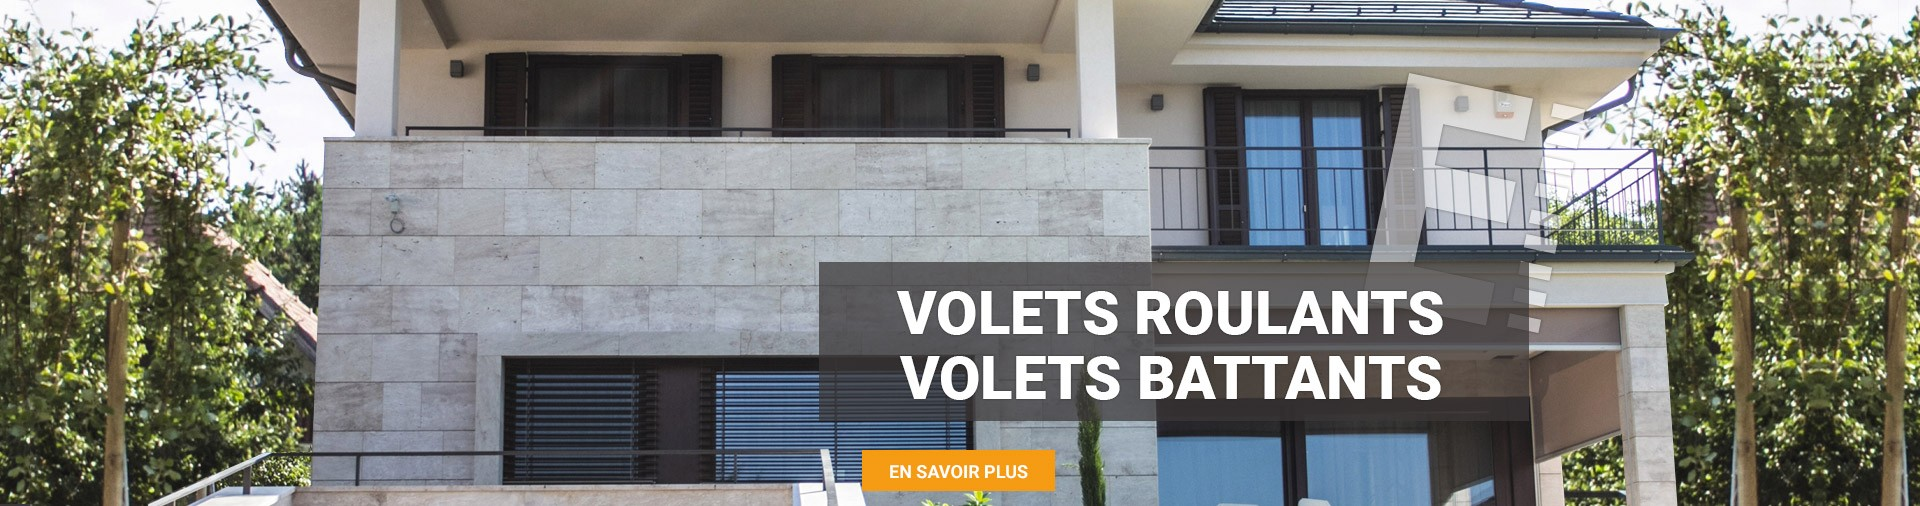 Menuiserie Barth, volets roulants volets battants-f1fa30